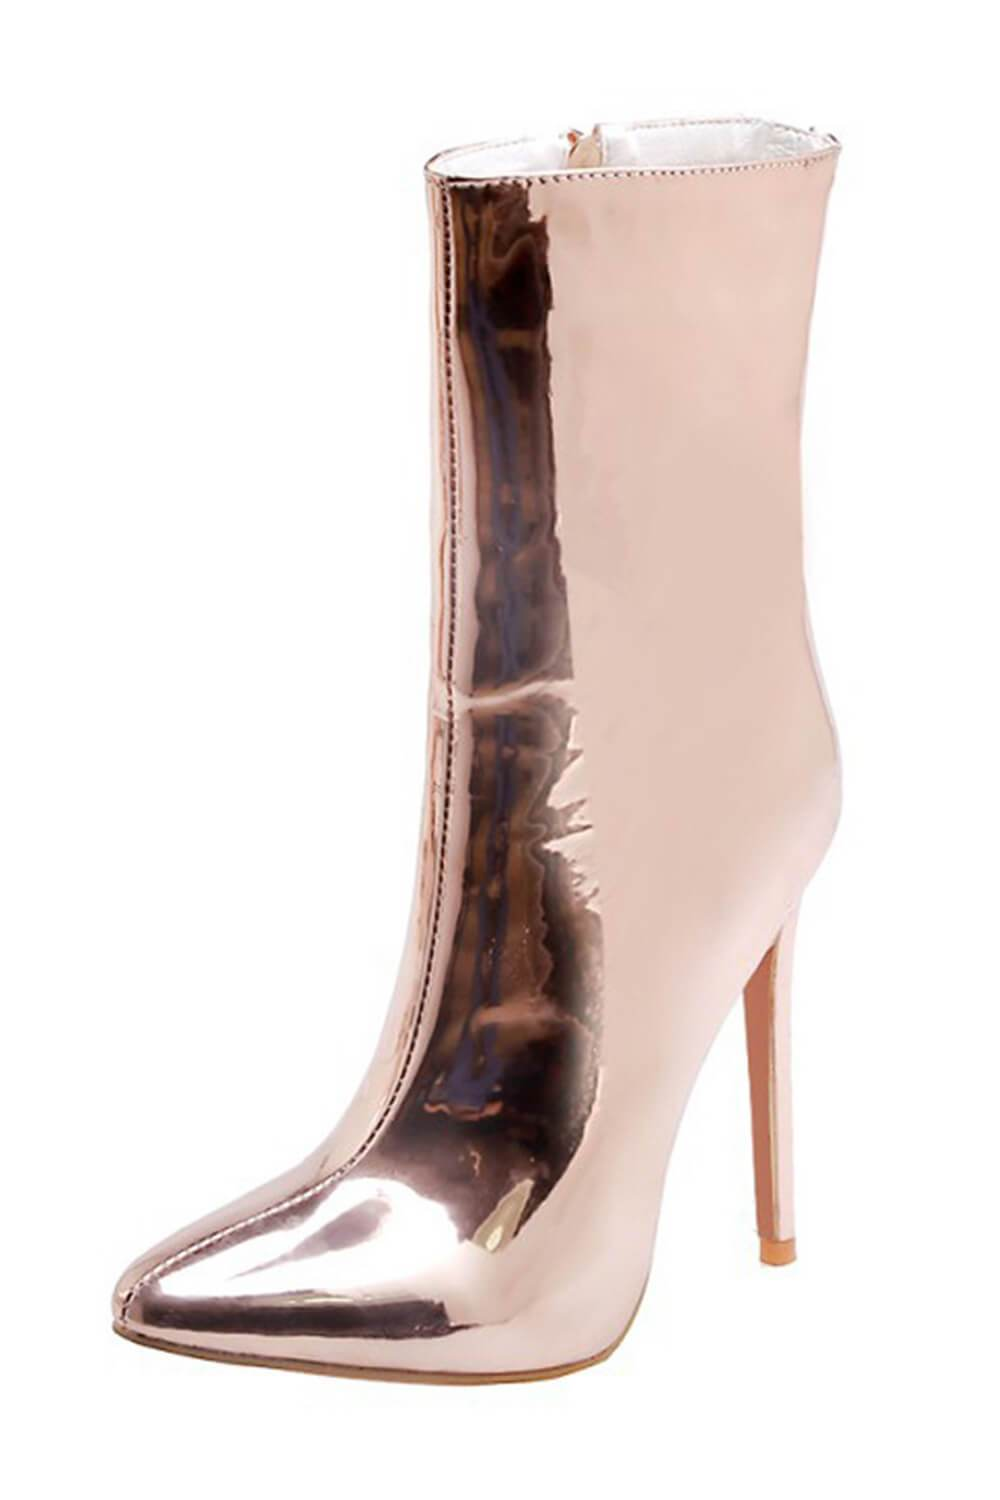 Metallic Champagne Pointed Stiletto Sock Boots (4307981074491)